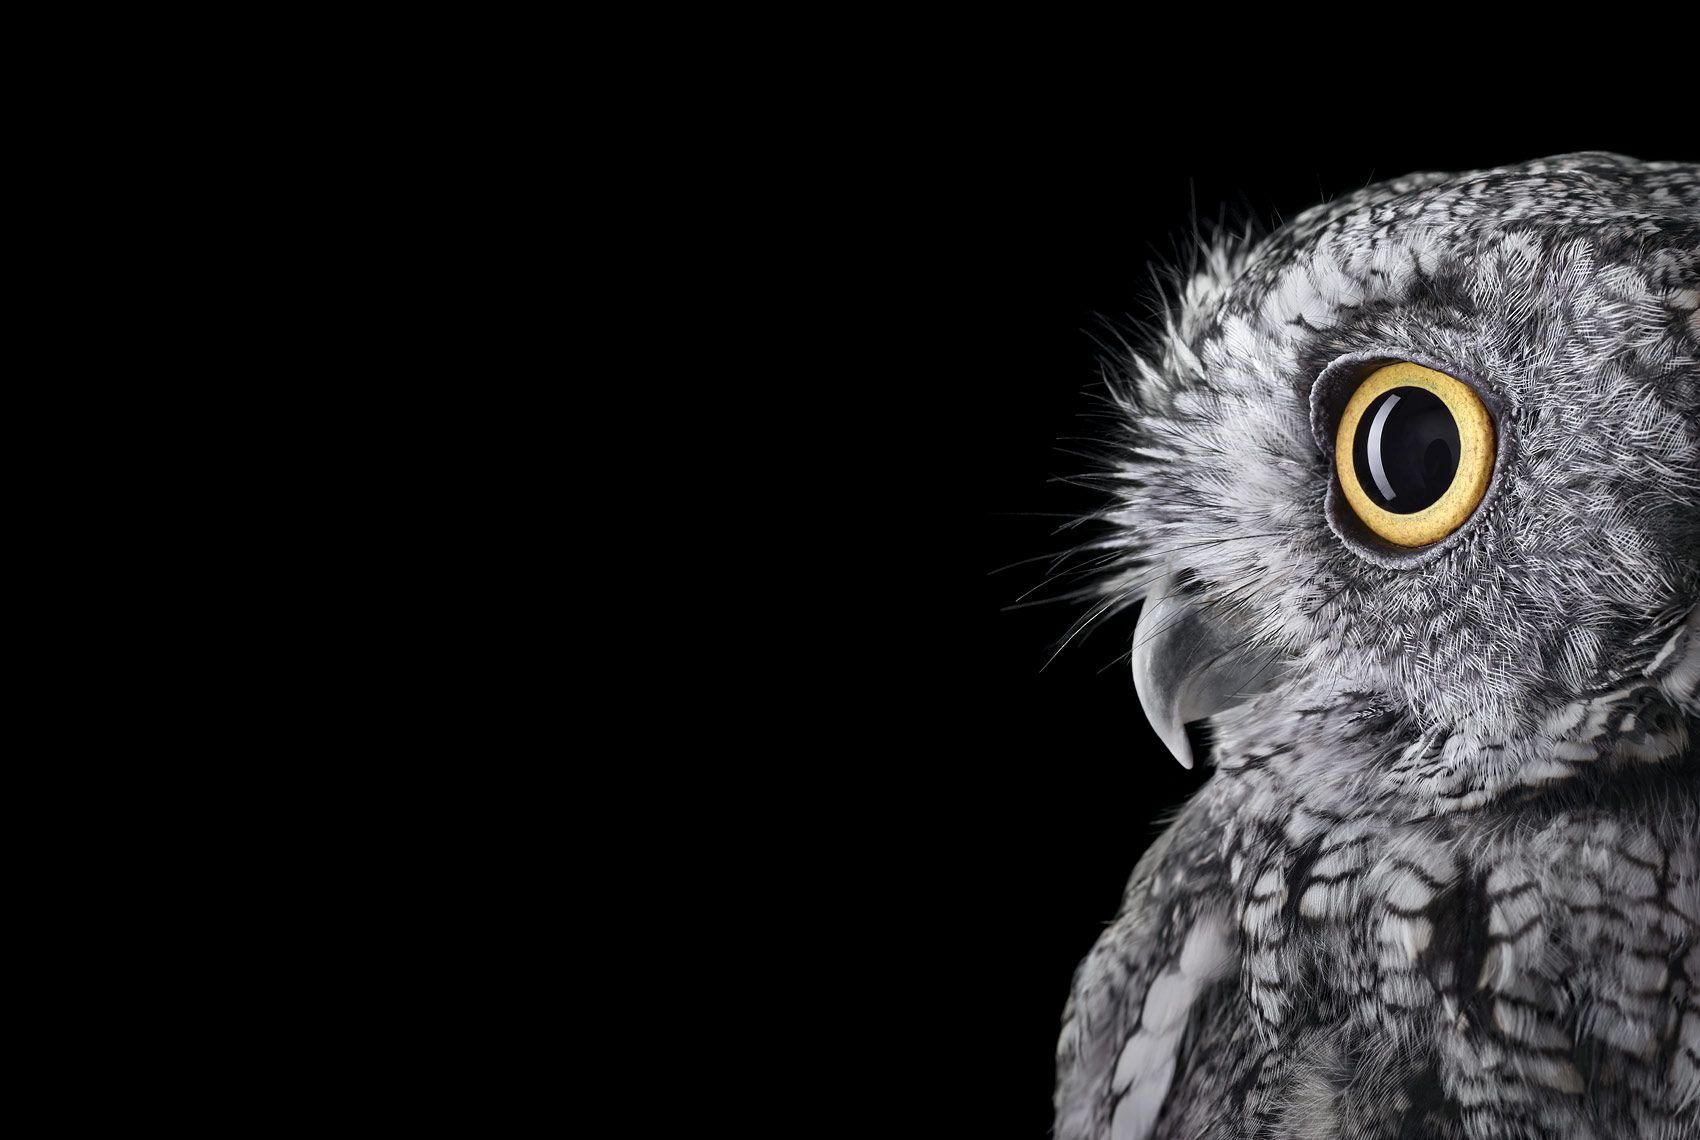 Western Screech Owl #2, Espanola, NM, 2011,Brad Wilson,Photography